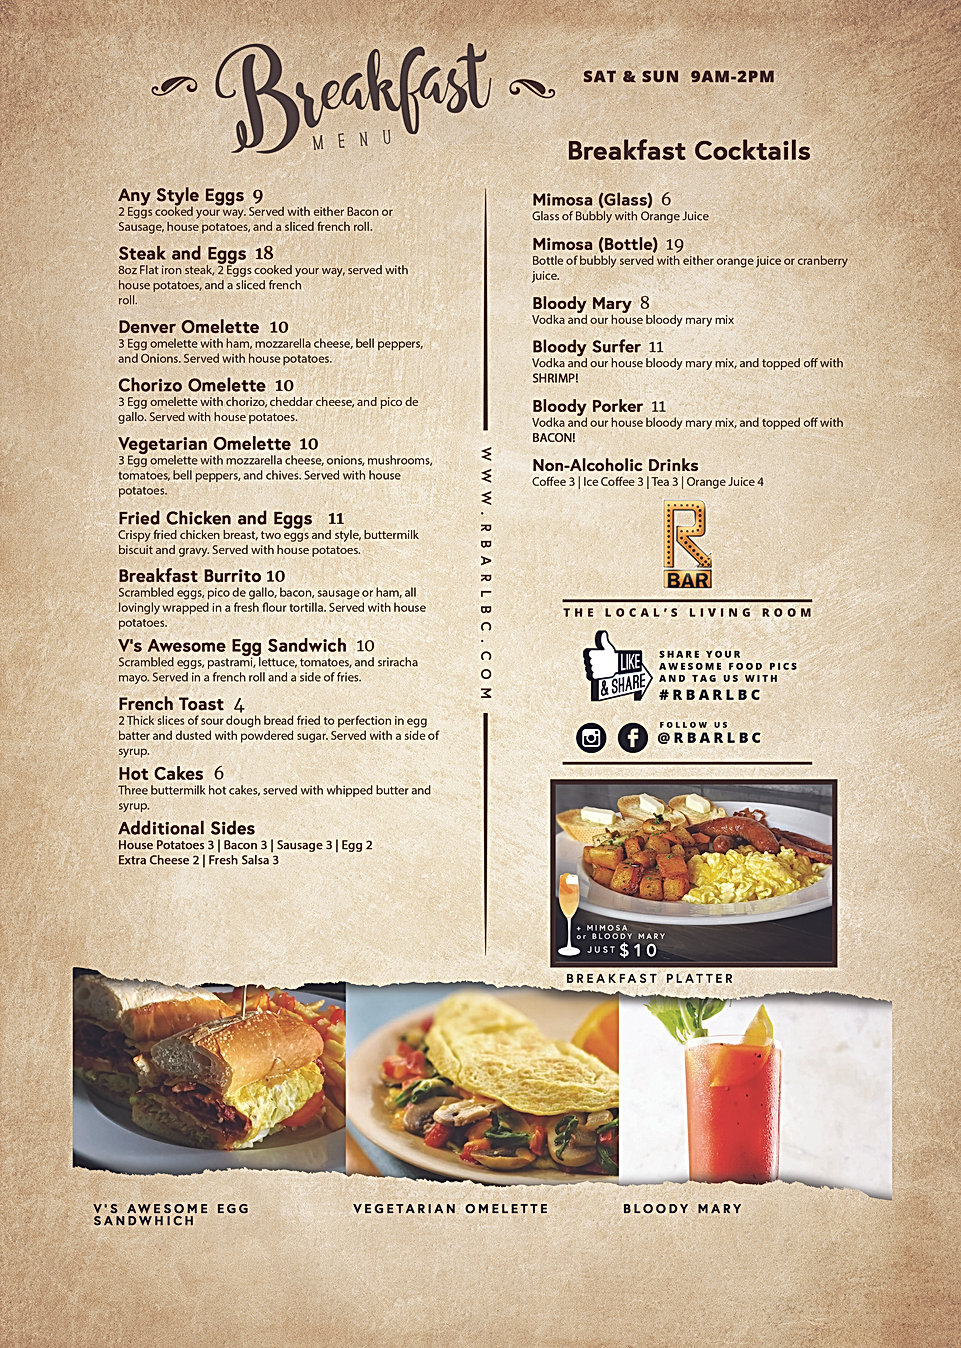 R BAR NEW Breakfast Menu 9-17.jpg